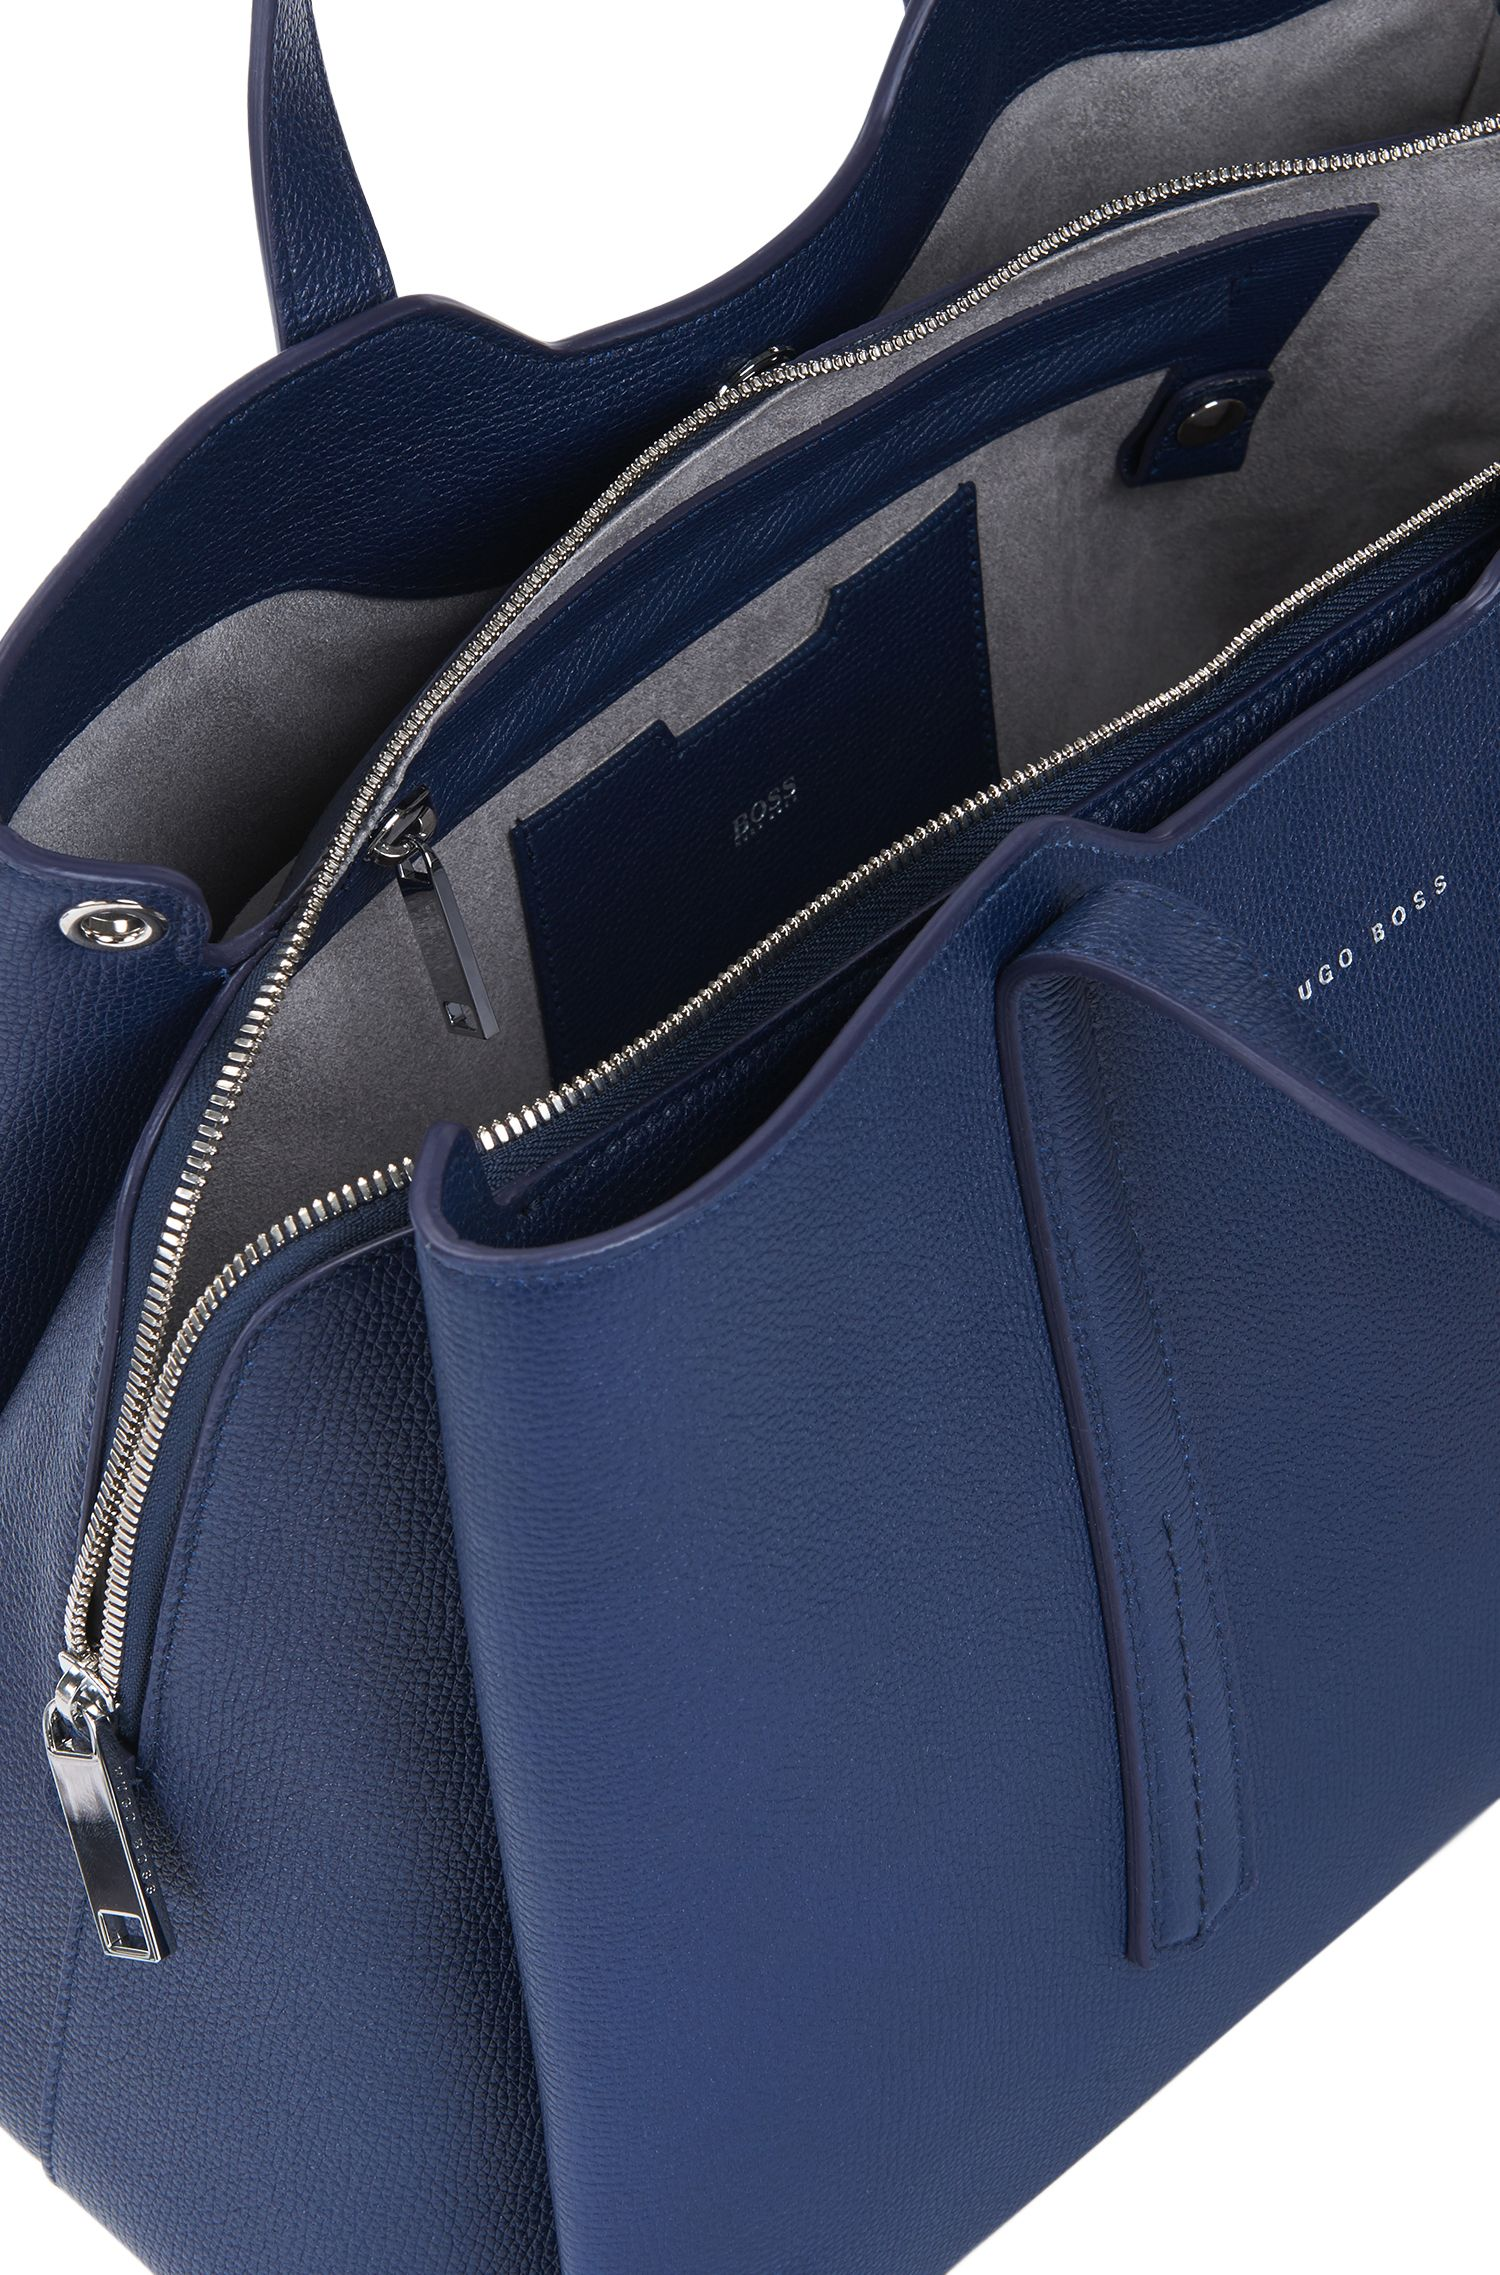 Full-Grain Leather Tote | Taylor Tote, Blue